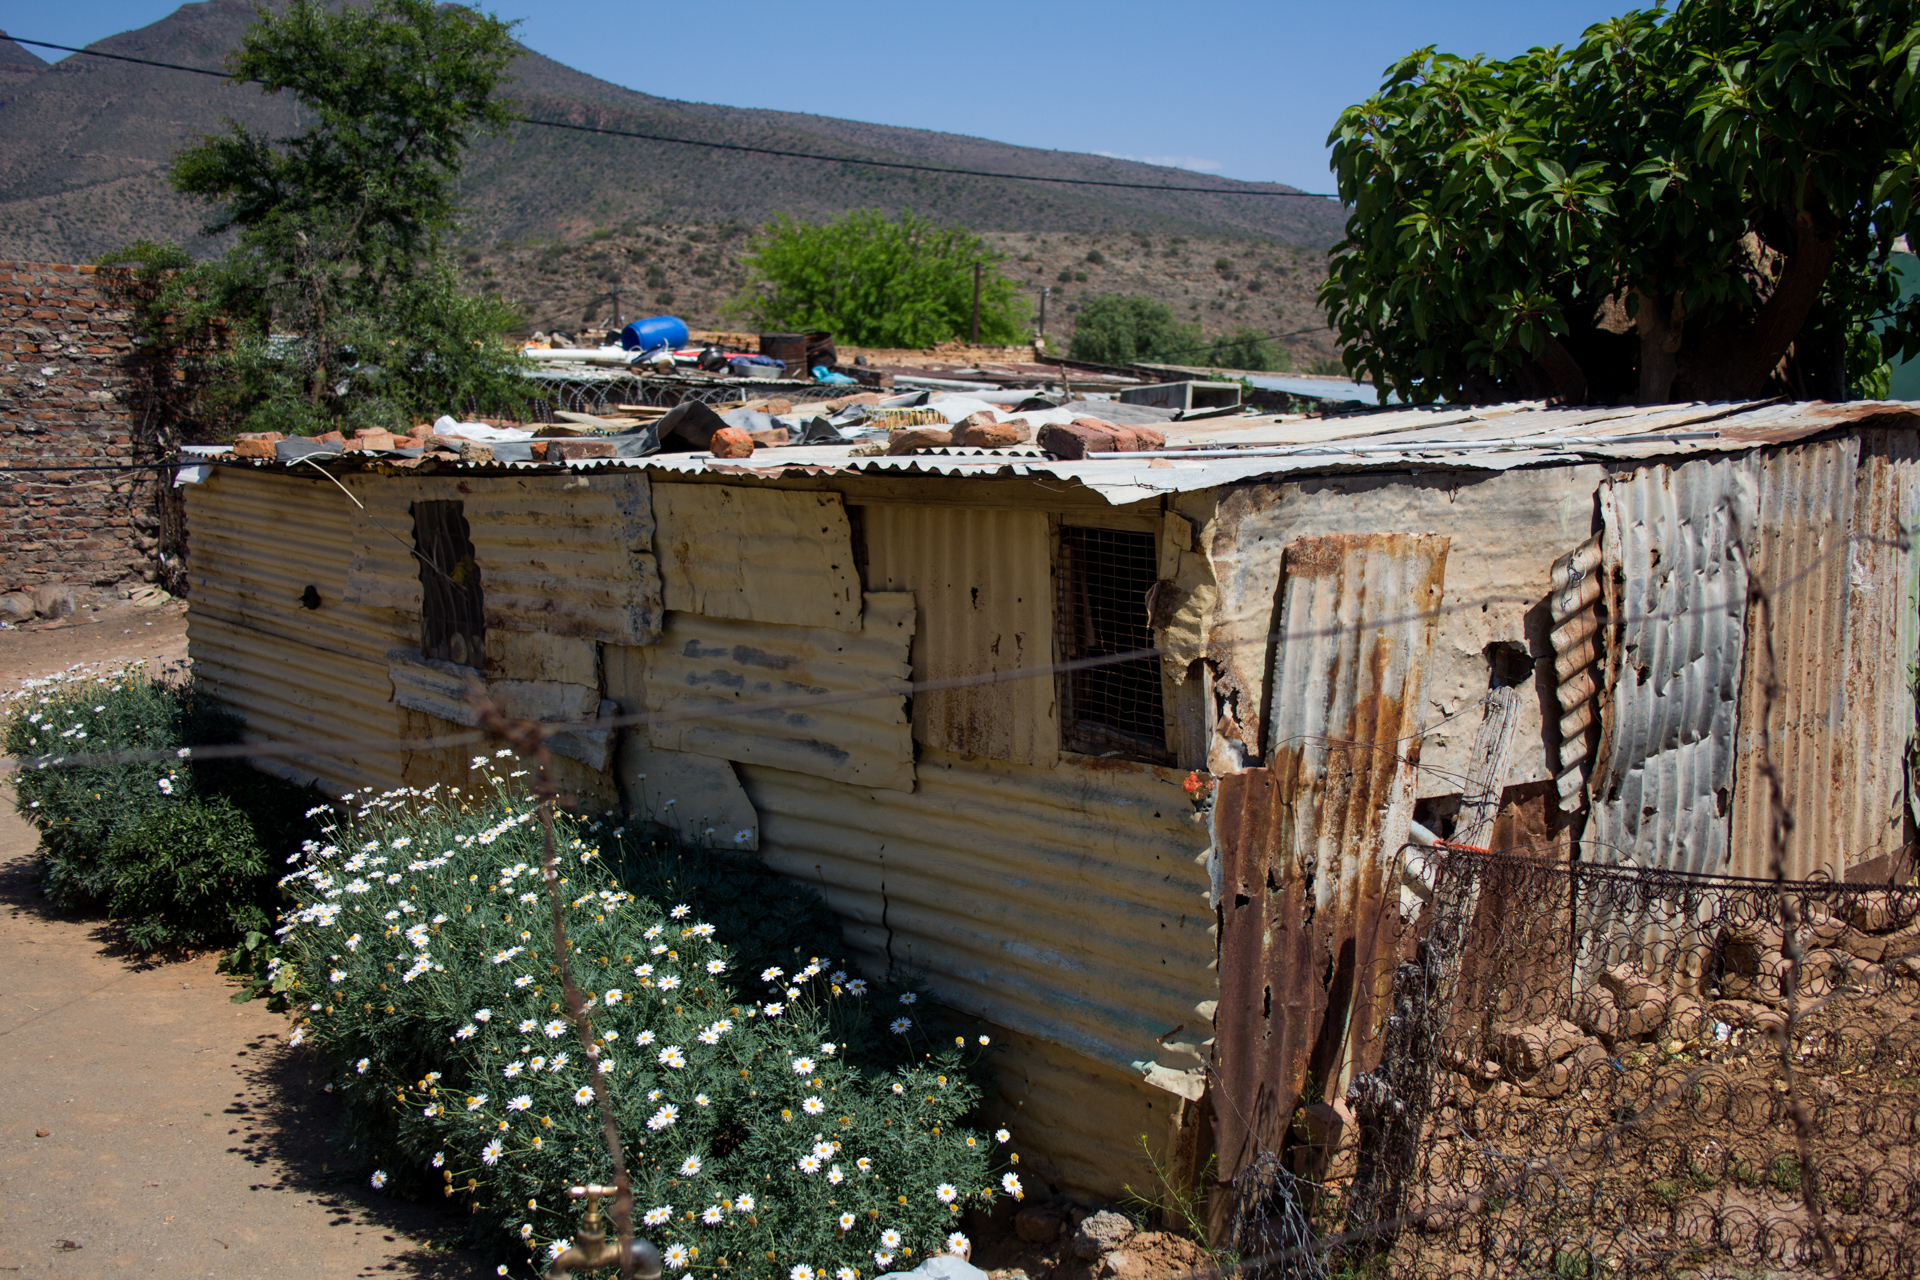 Graaff-Reinet South Africa  City pictures : Township – Graaff Reinet South Africa